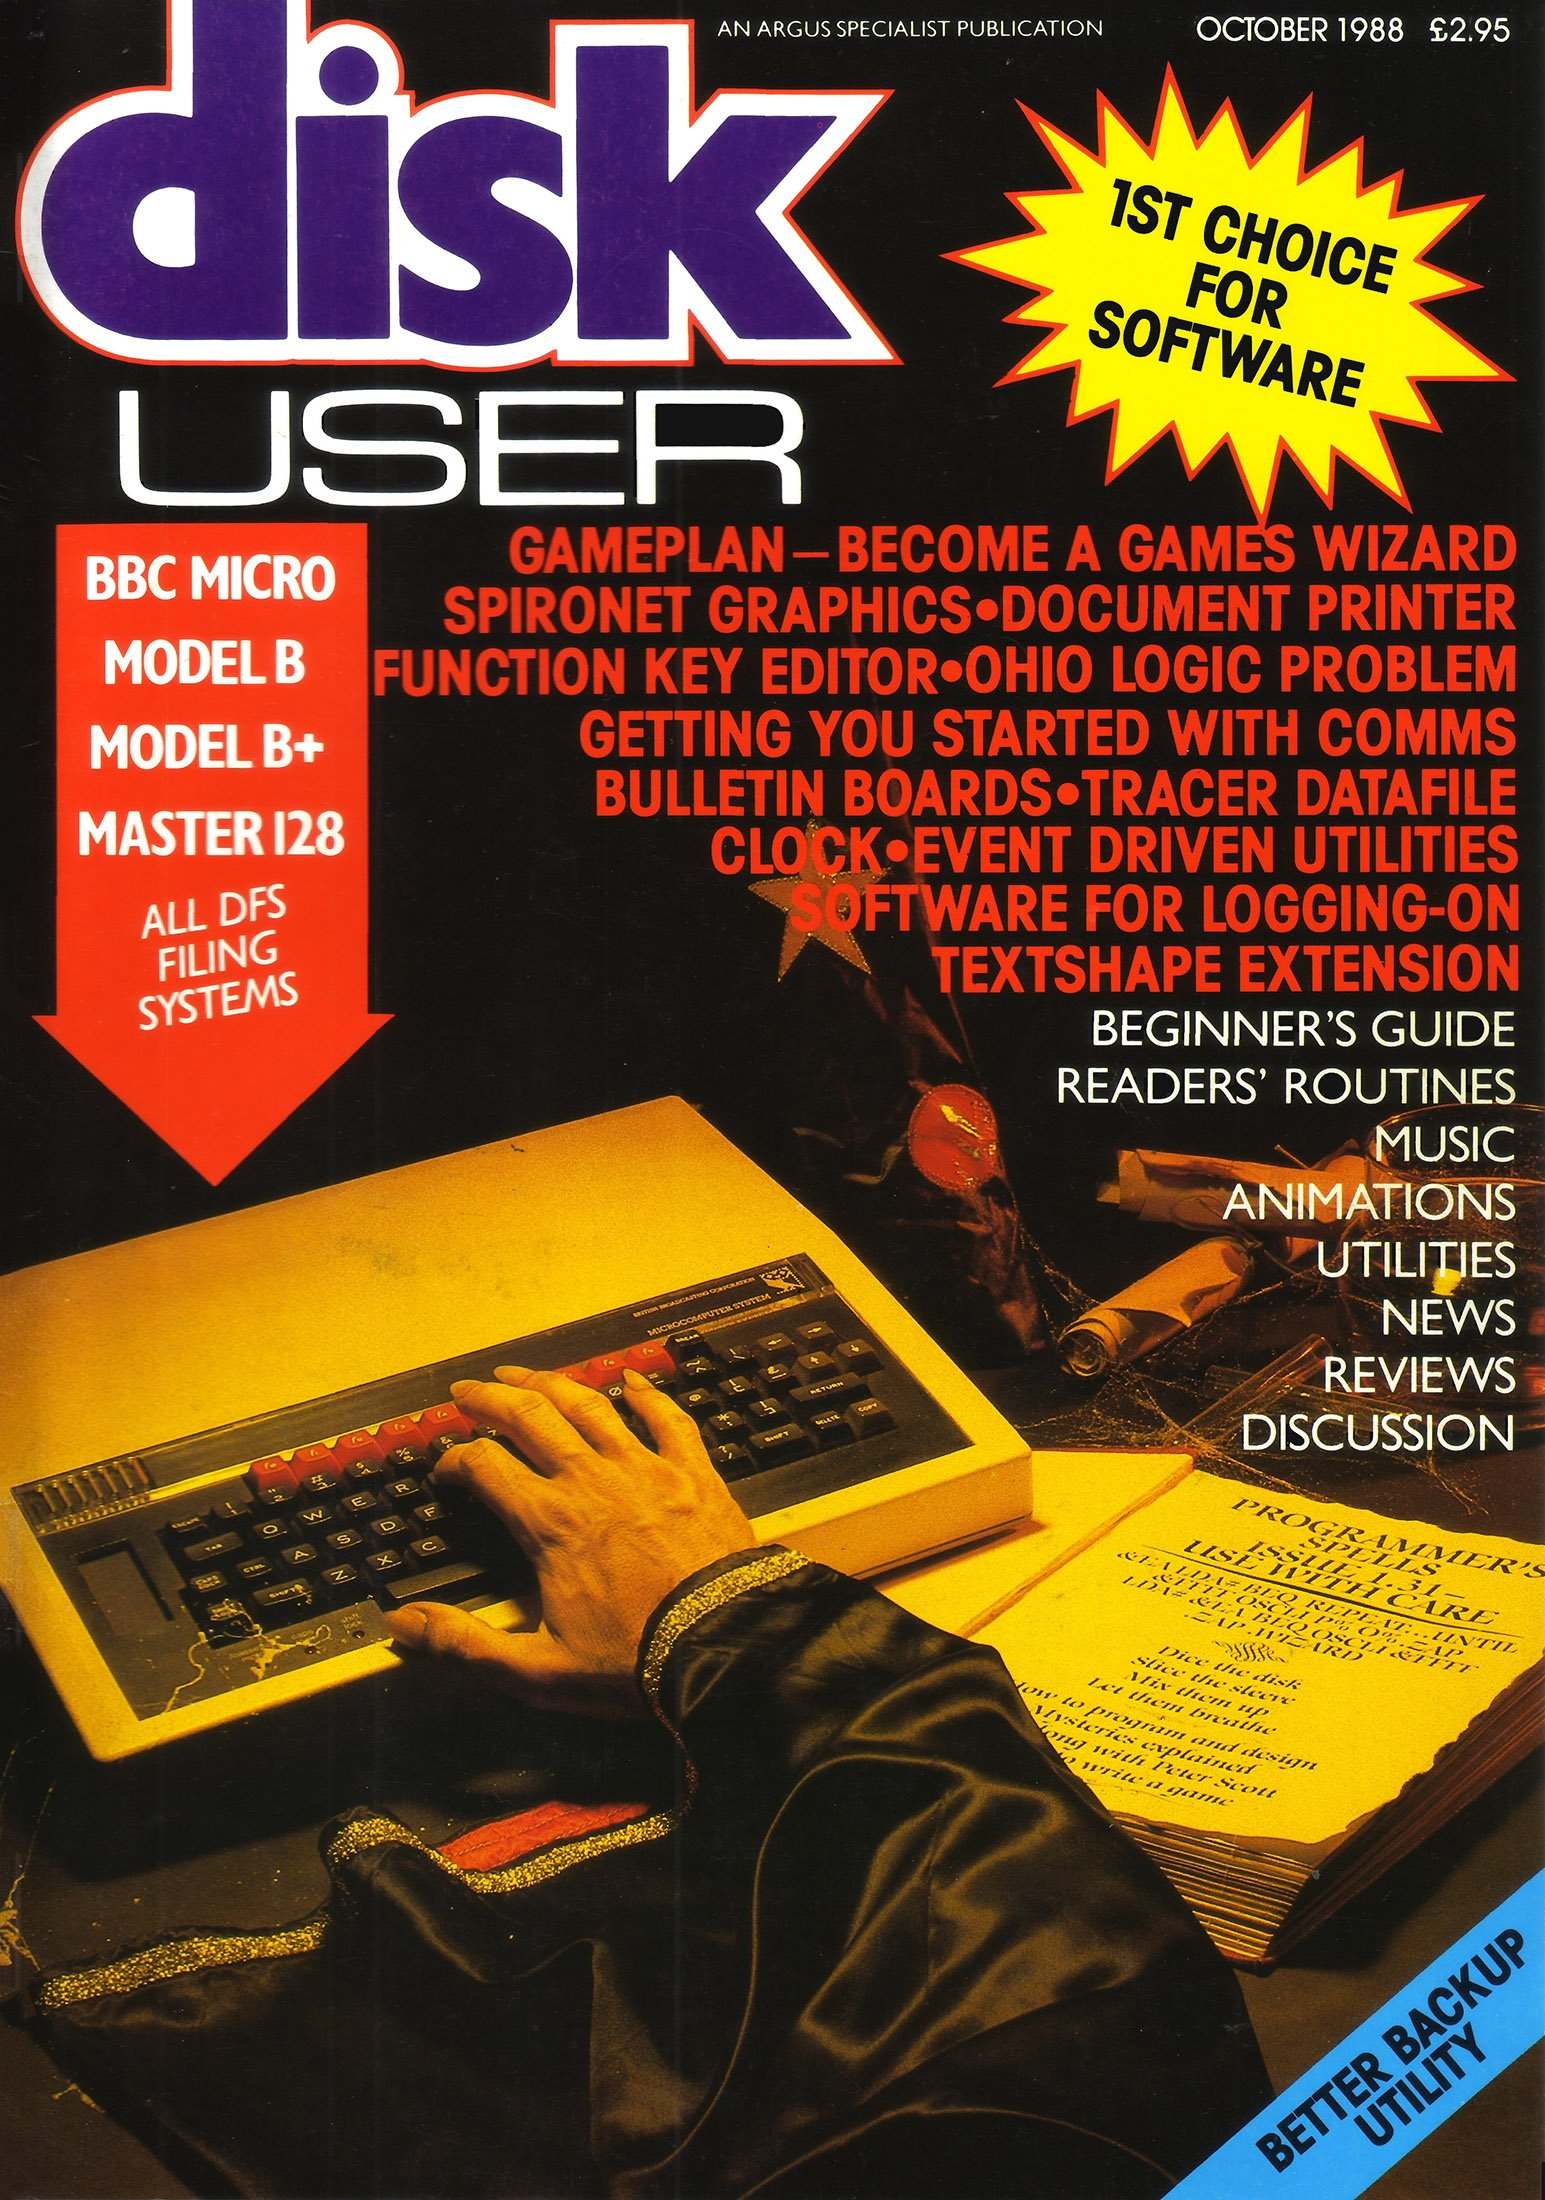 Disk User Issue 12 (October 1988)